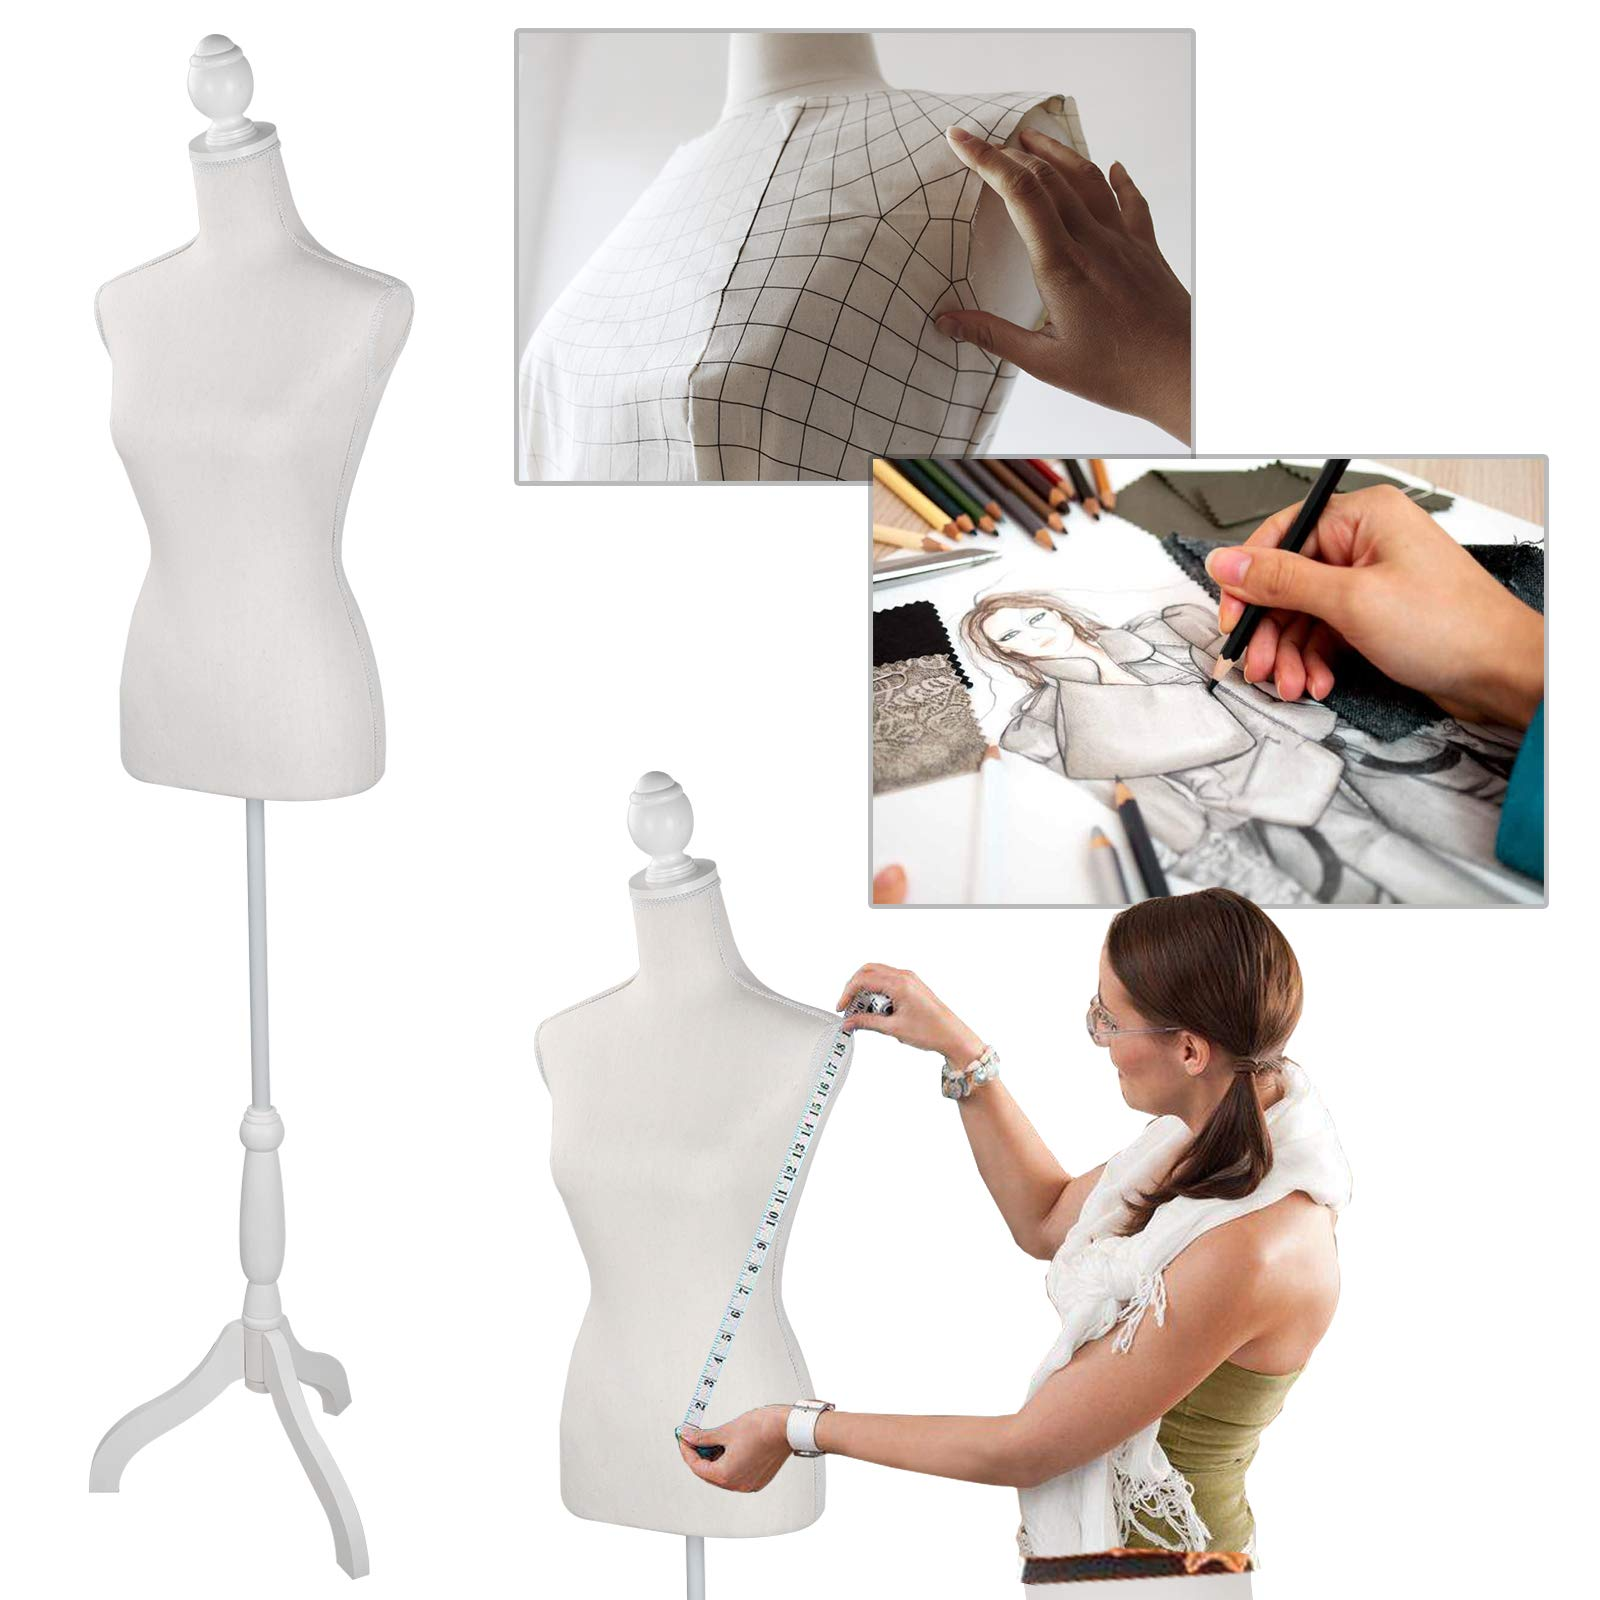 Female Mannequin Torso Body Dress Form Clothing Display W/Tripod Wooden Base for Clothing Dress Jewelry Display Photography